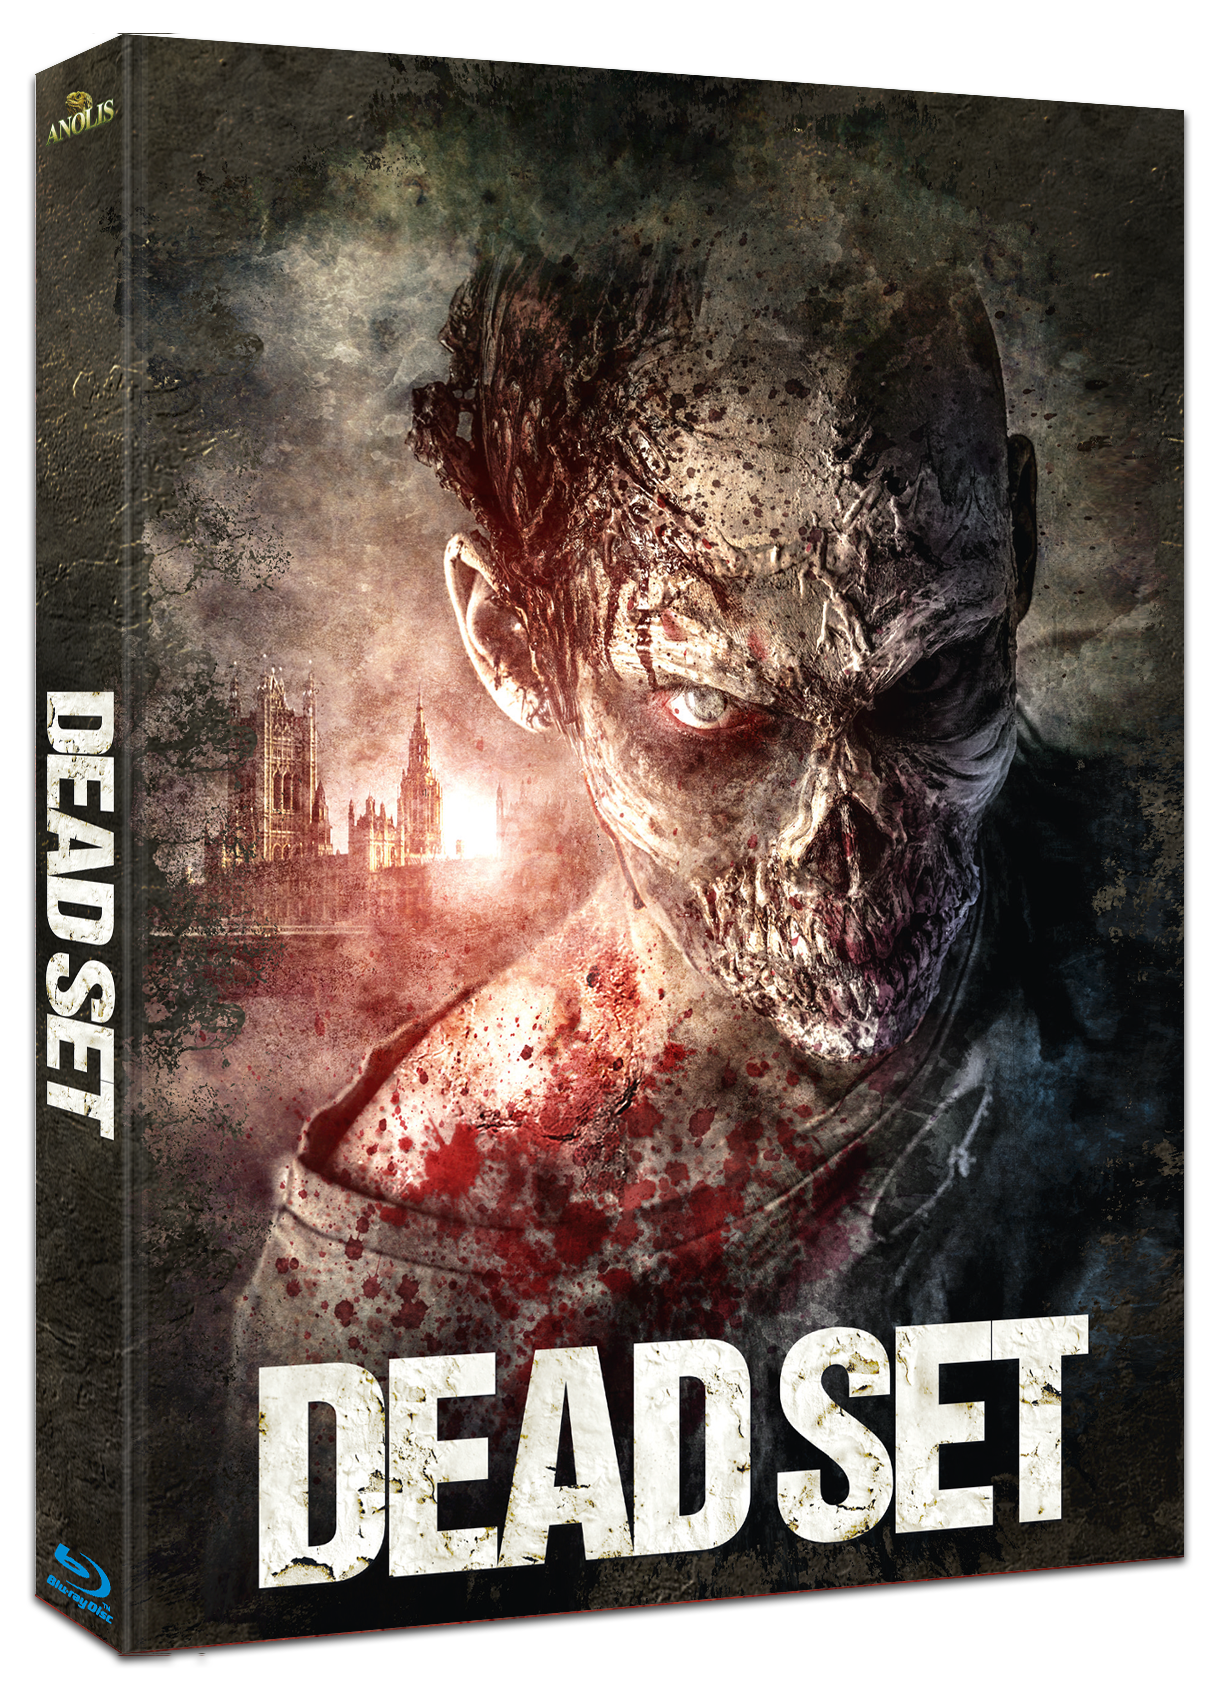 DEAD SET BluRay mediabook